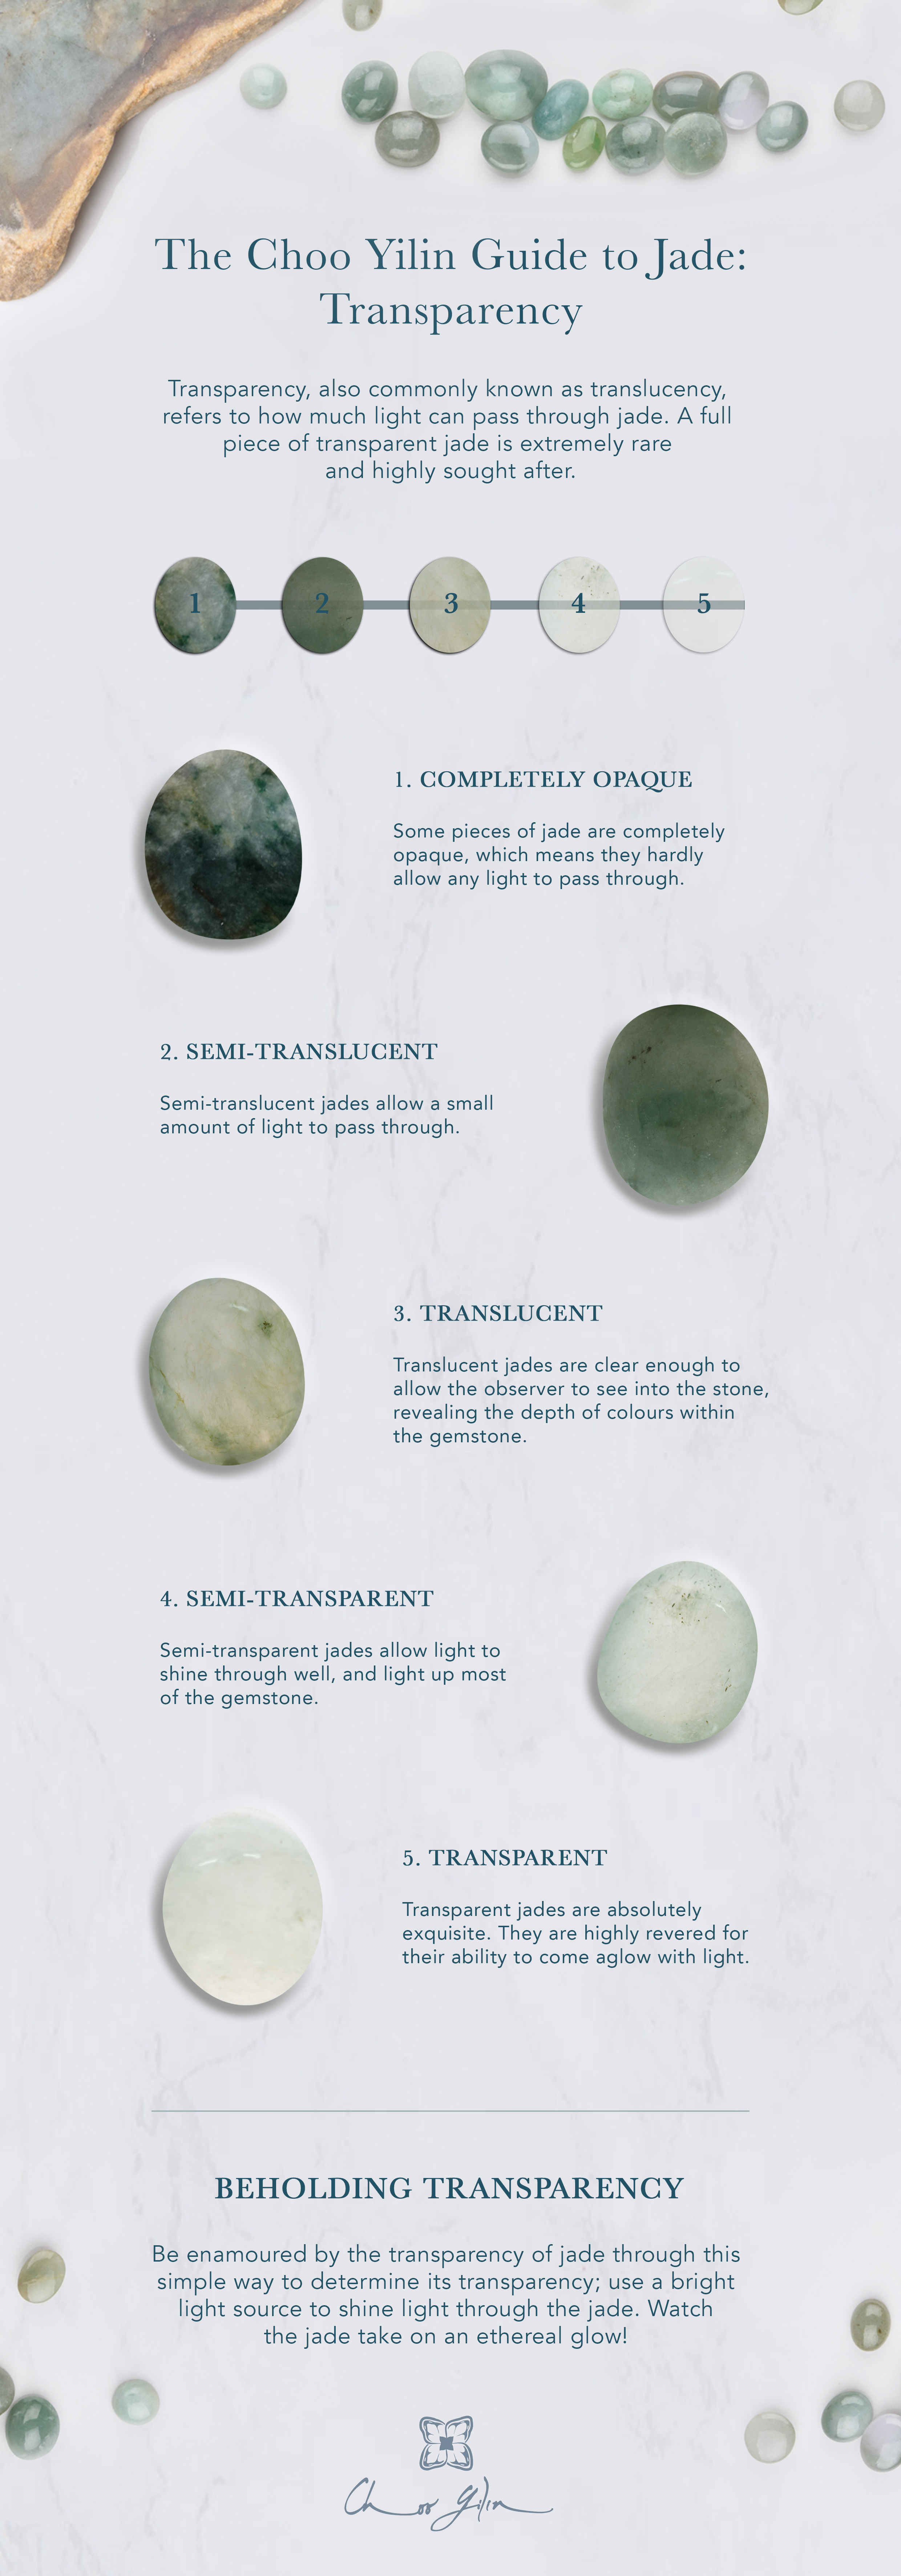 The Choo Yilin Guide to Jade:Transparency Transparency, also commonly known as translucency, refers to how much light can pass through jade. A full piece of transparent jade is extremely rare and highly sought after. 1. COMPLETELY OPAQUE Some pieces of jade are completely opaque, which means they hardly allow any light to pass through. 2. SEMI-TRANSLUCENT Semi-translucent jades allow a small amount of light to pass through. 3. TRANSLUCENT Translucent jades are clear enough to allow the observer to see into the stone, revealing the depth of colours within the gemstone. 4. SEMI-TRANSPARENT Semi-transparent jades allow light to shine through well, and light up most of the gemstone. 5. TRANSPARENT Transparent jades are absolutely exquisite. They are highly revered for their ability to come aglow with light. BEHOLDING TRANSPARENCY Be enamoured by the transparency of jade through this simple way to determine its transparency; use a bright light source to shine light through the jade. Watch the jade take on an ethereal glow!